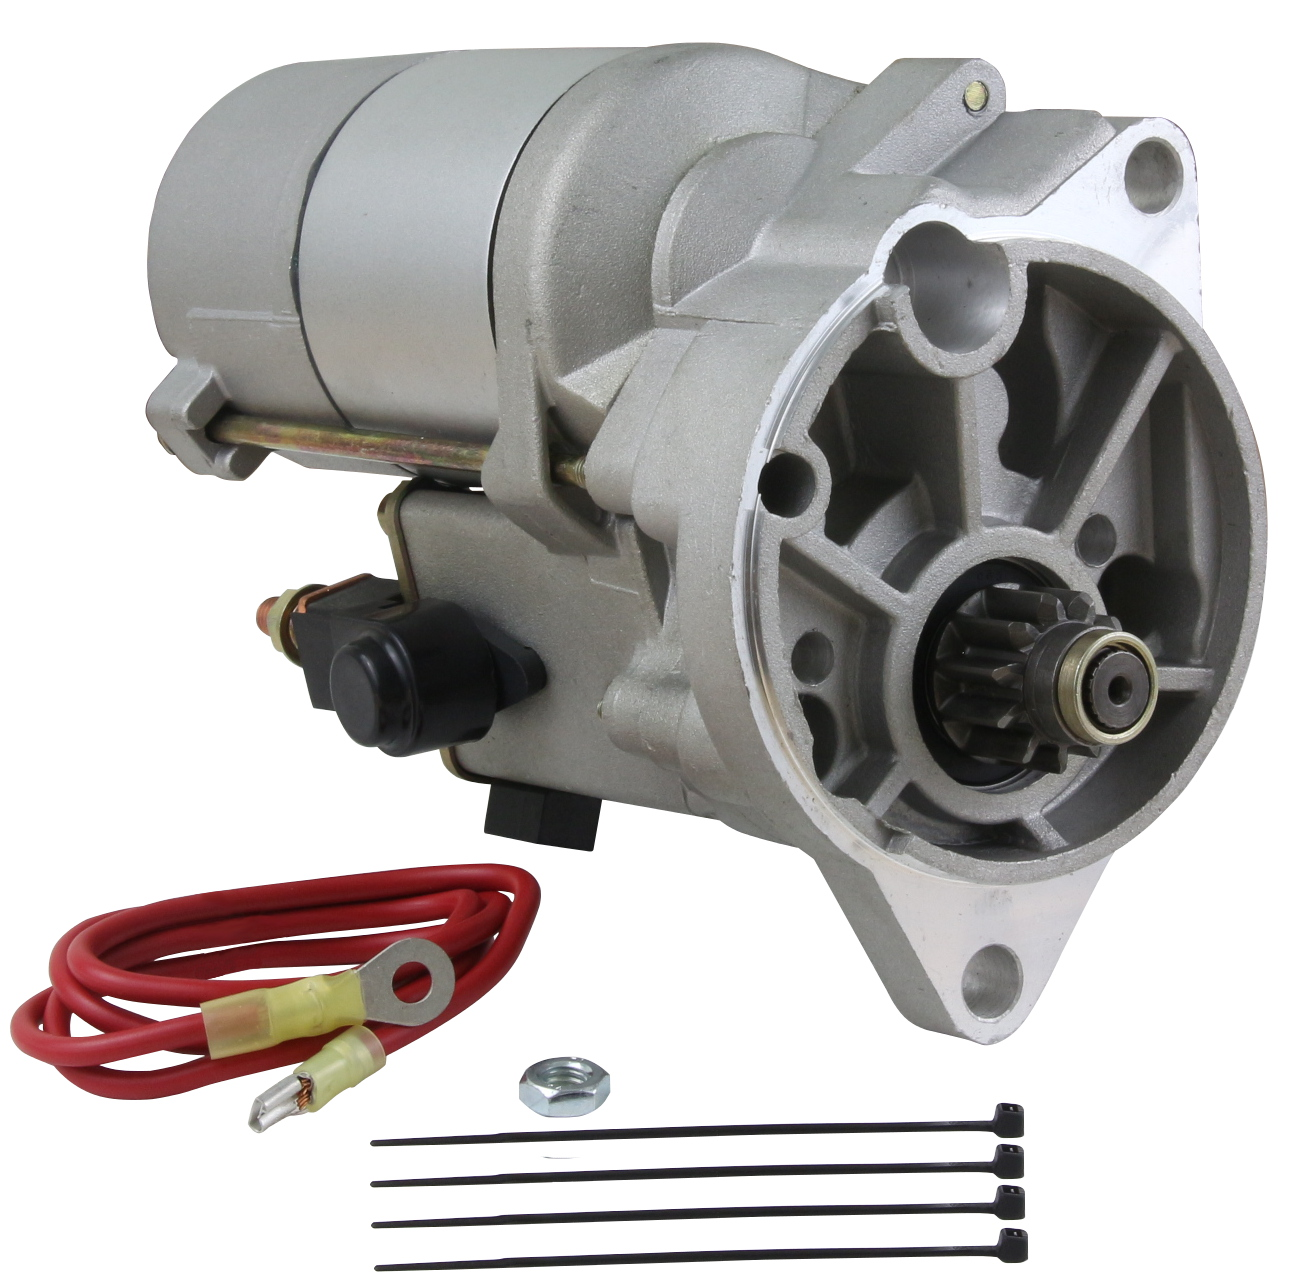 NEW HIGH TORQUE GEAR REDUCTION STARTER FITS FORD BRONCO V8 66-77 D6OZ-11002-A